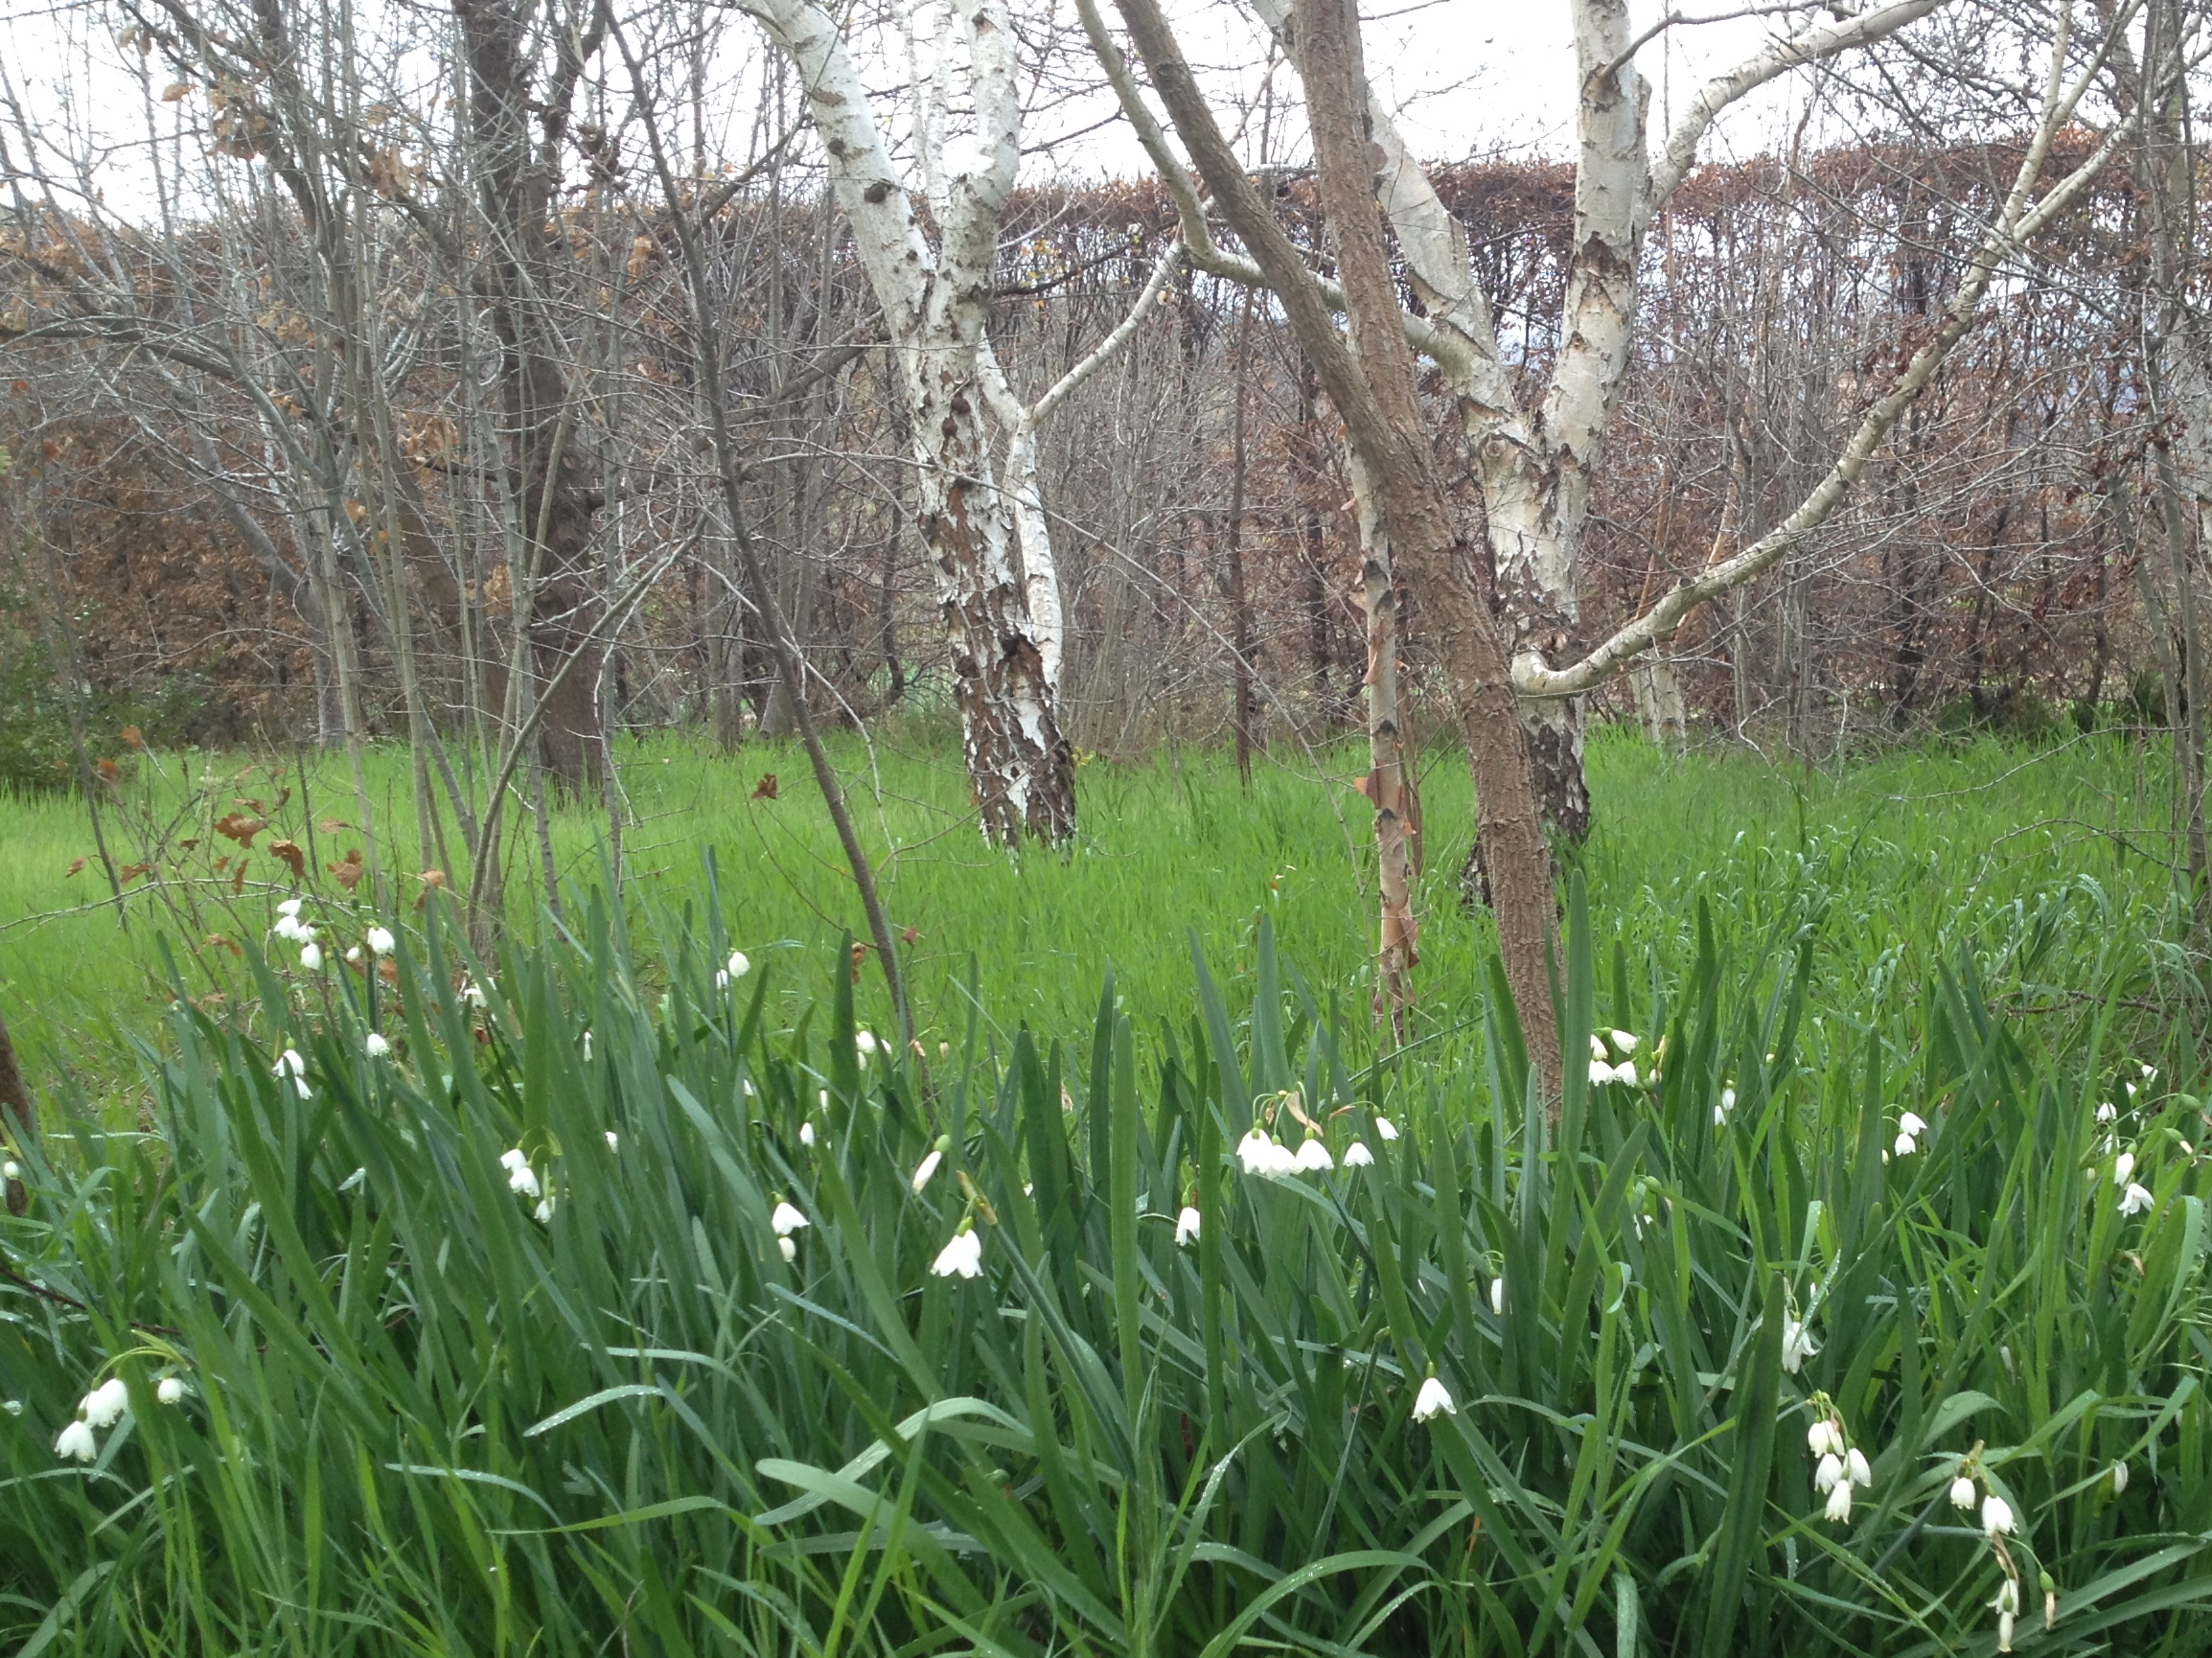 Snowdrops (one of Jekyll's favorites) signal spring in the wood.